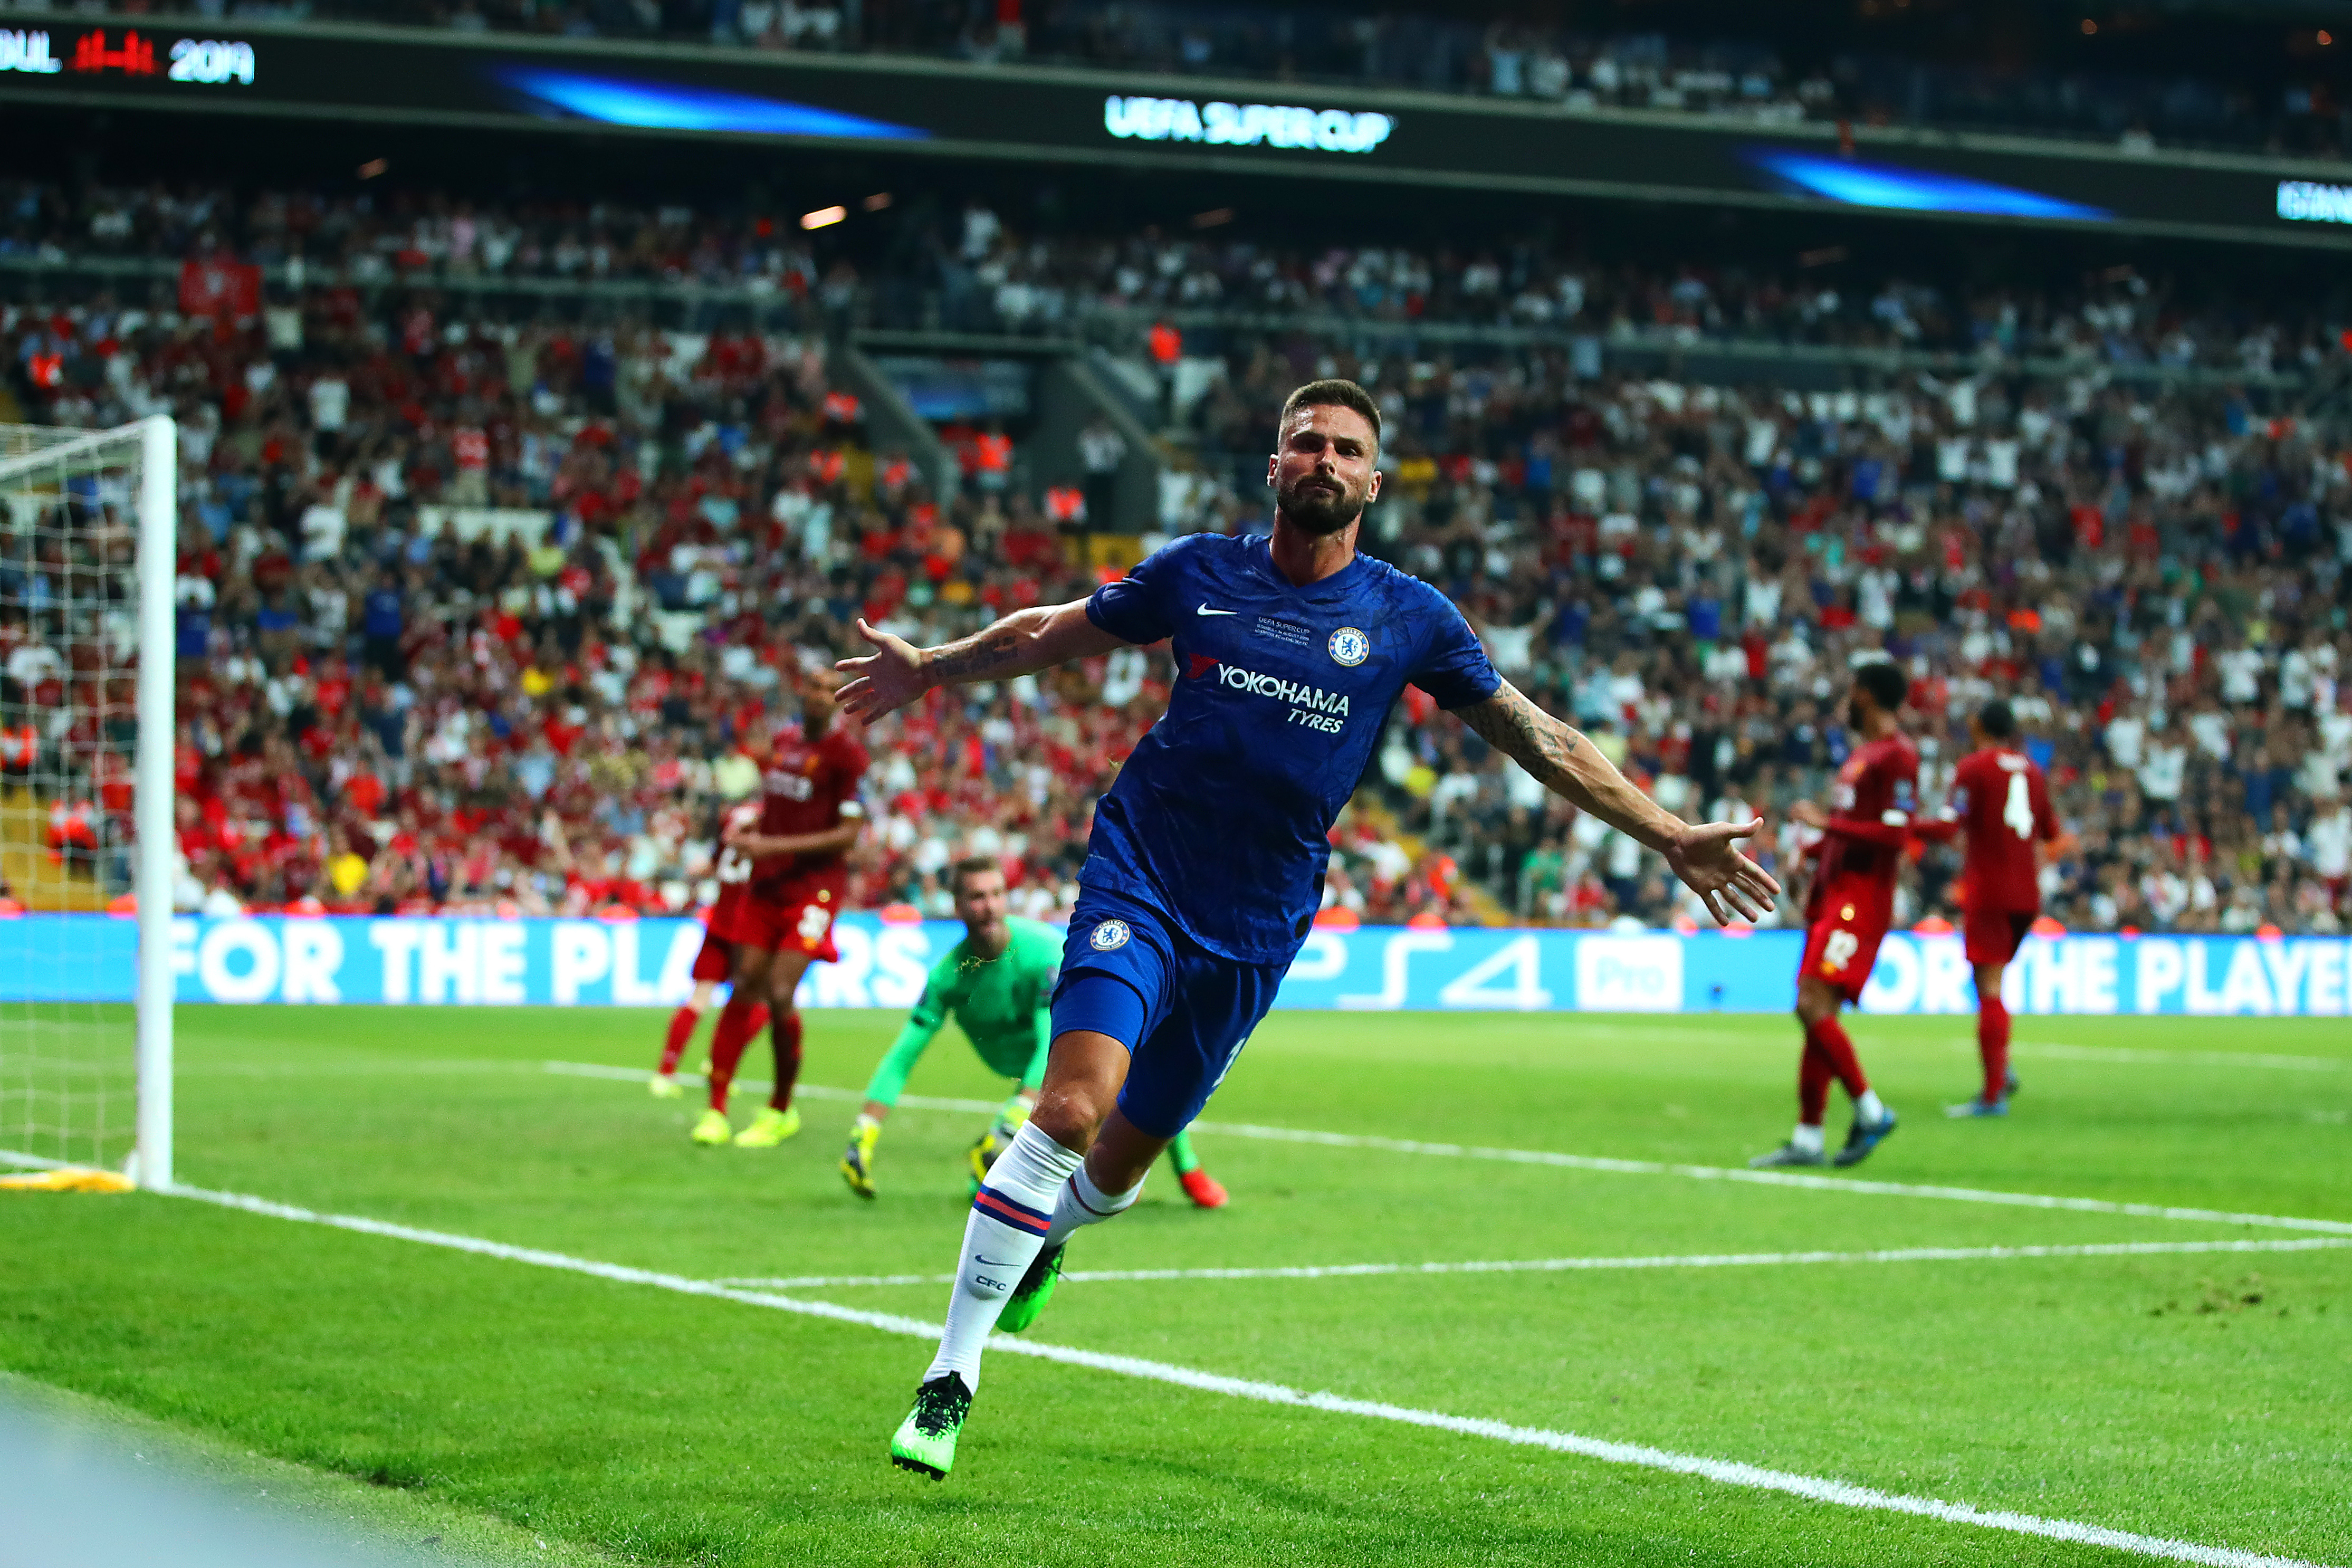 Giroud on Lampard's positivity, Chelsea's quality, and challenging for trophies